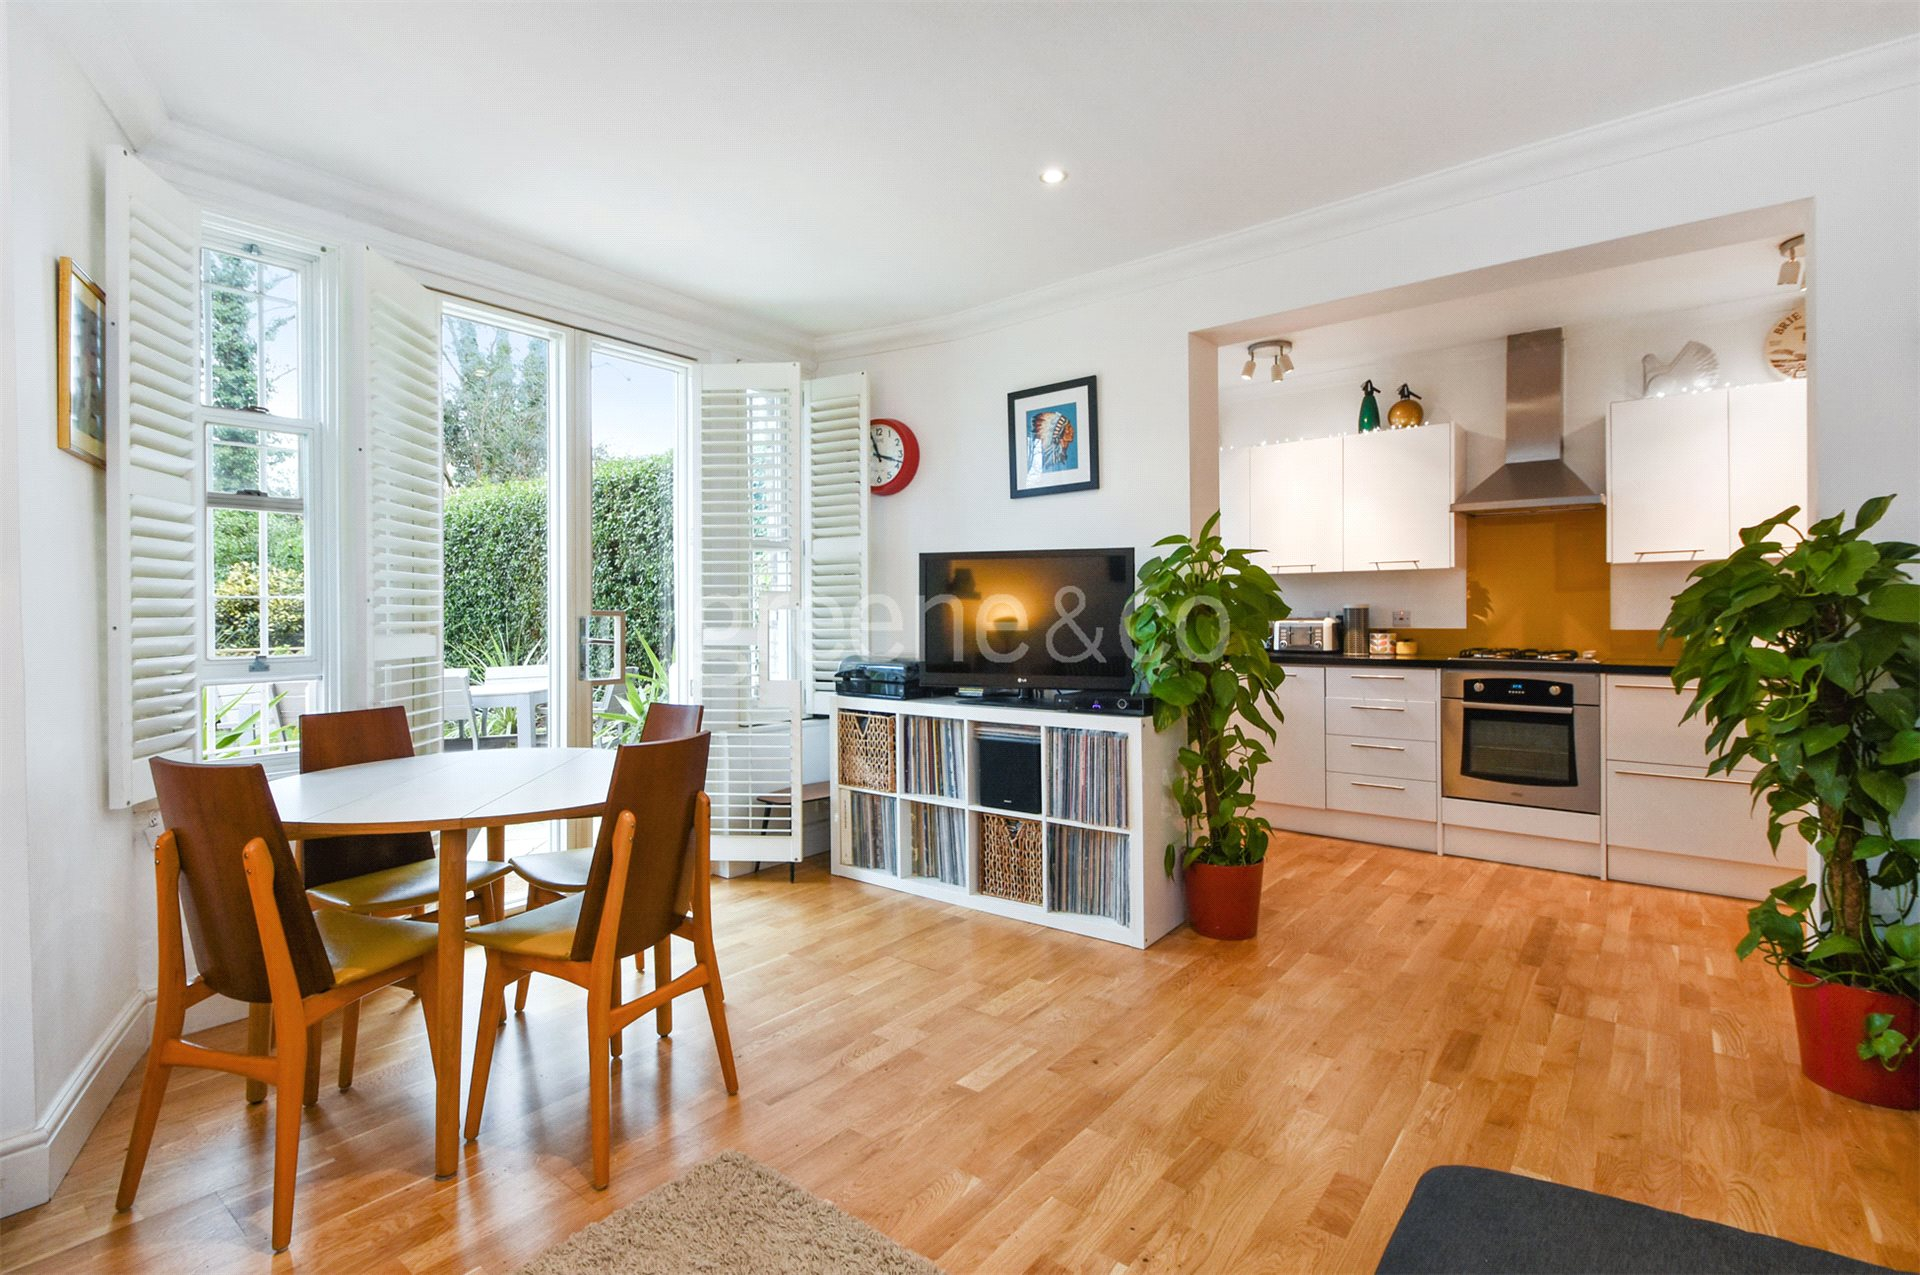 2 Bedrooms Flat for sale in Christchurch Avenue, Mapesbury Conservation, London, NW6